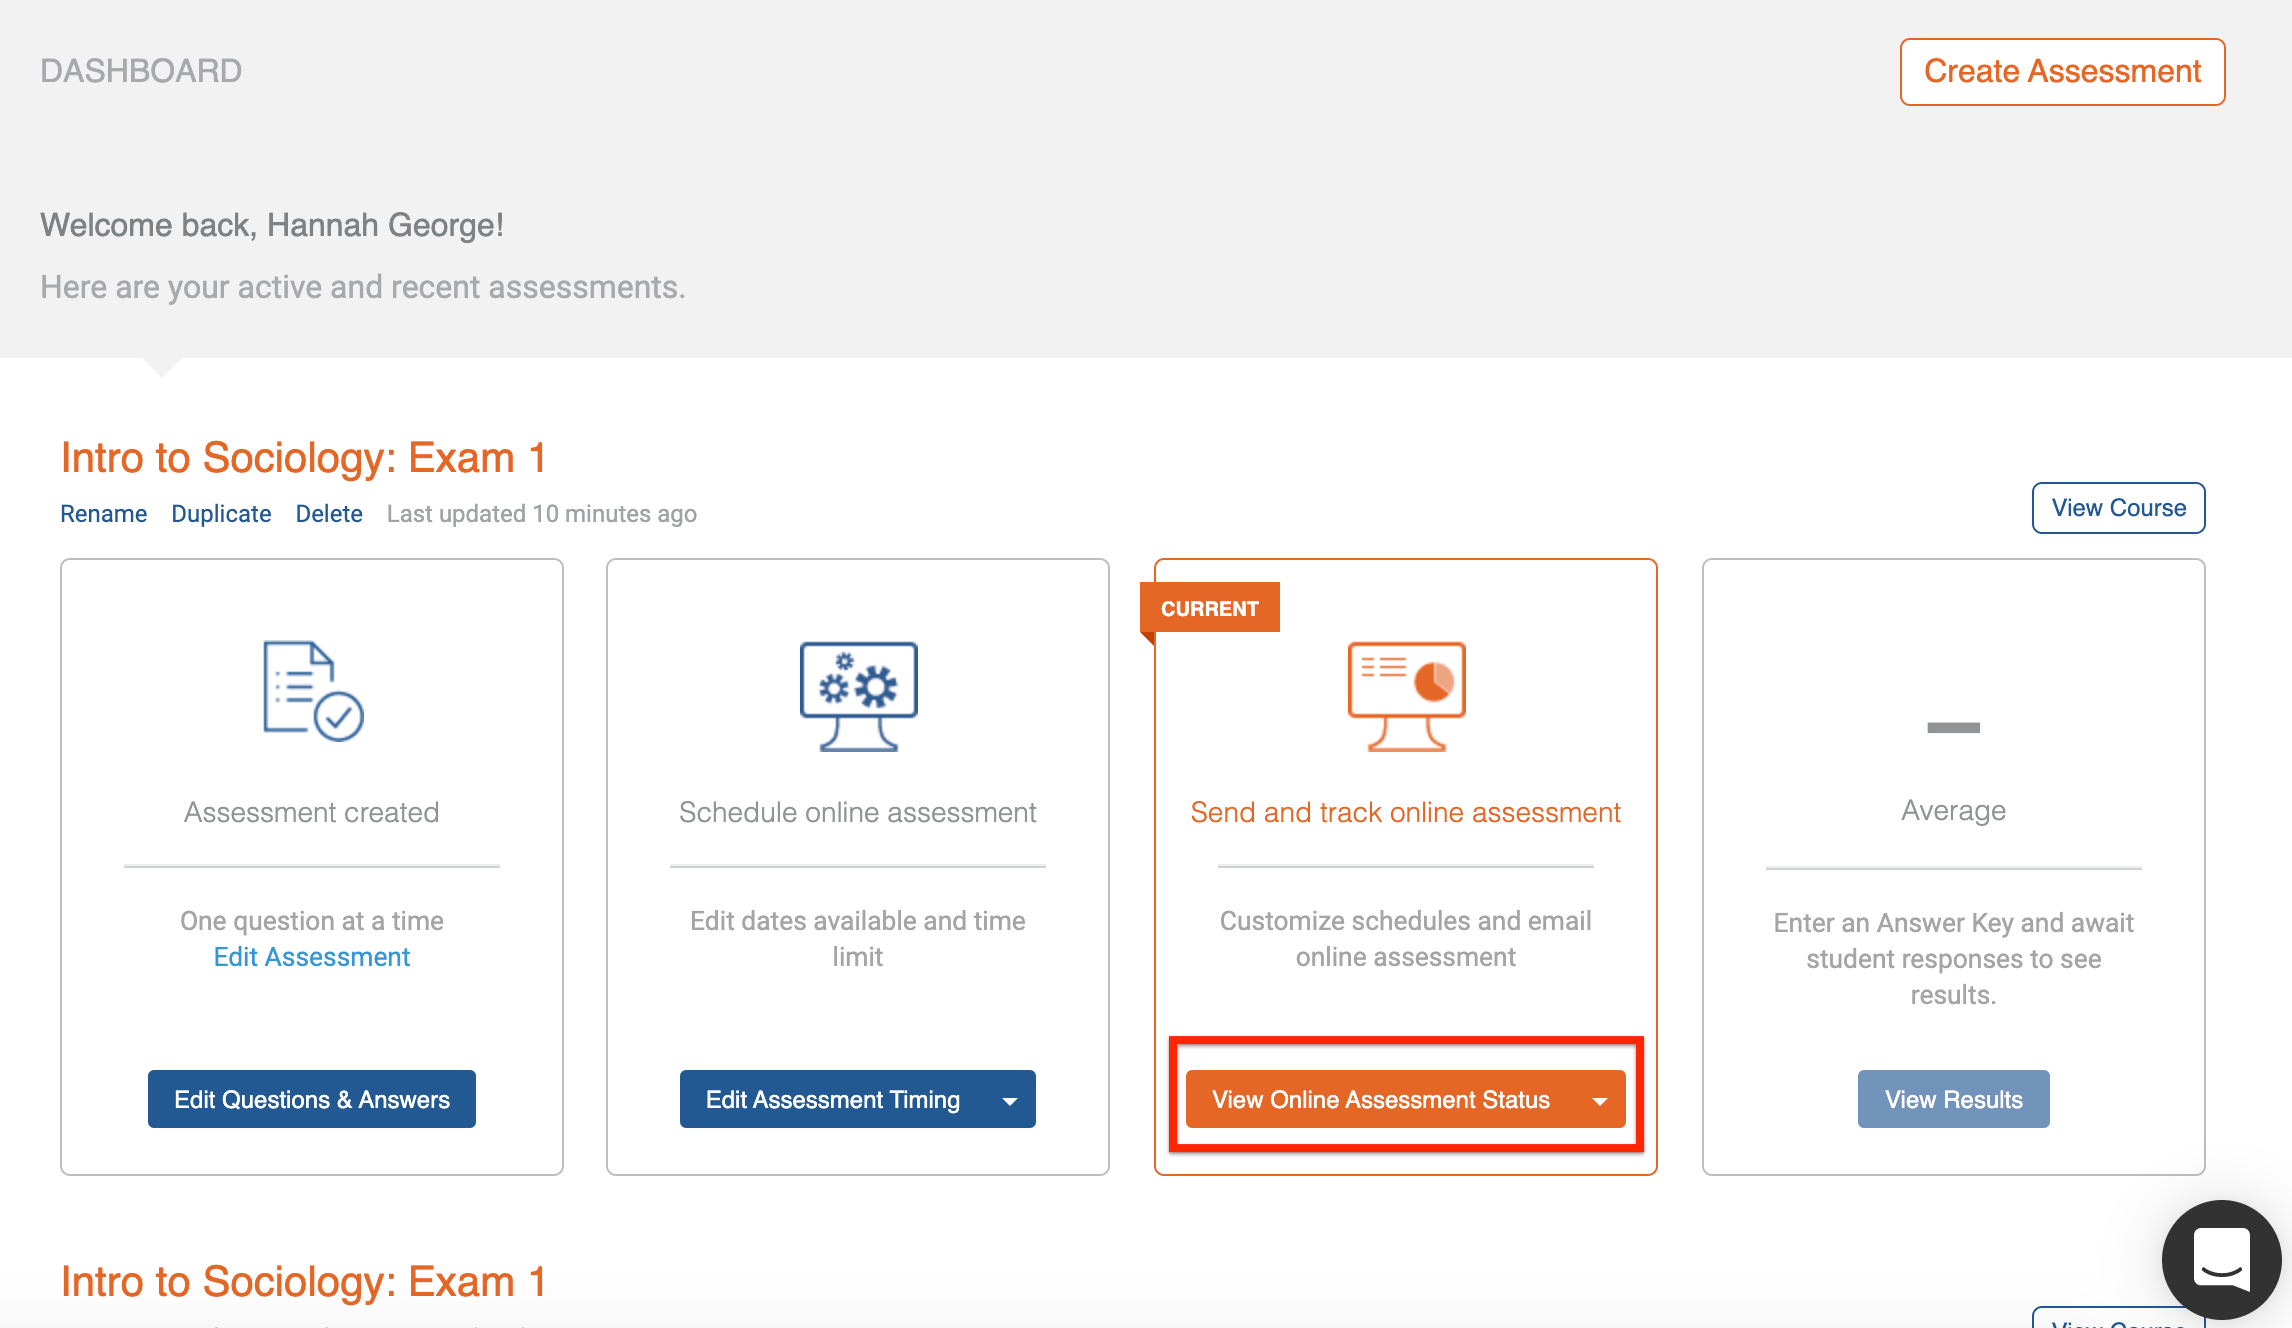 Course dashboard, 'view online assessment status' button highlighted